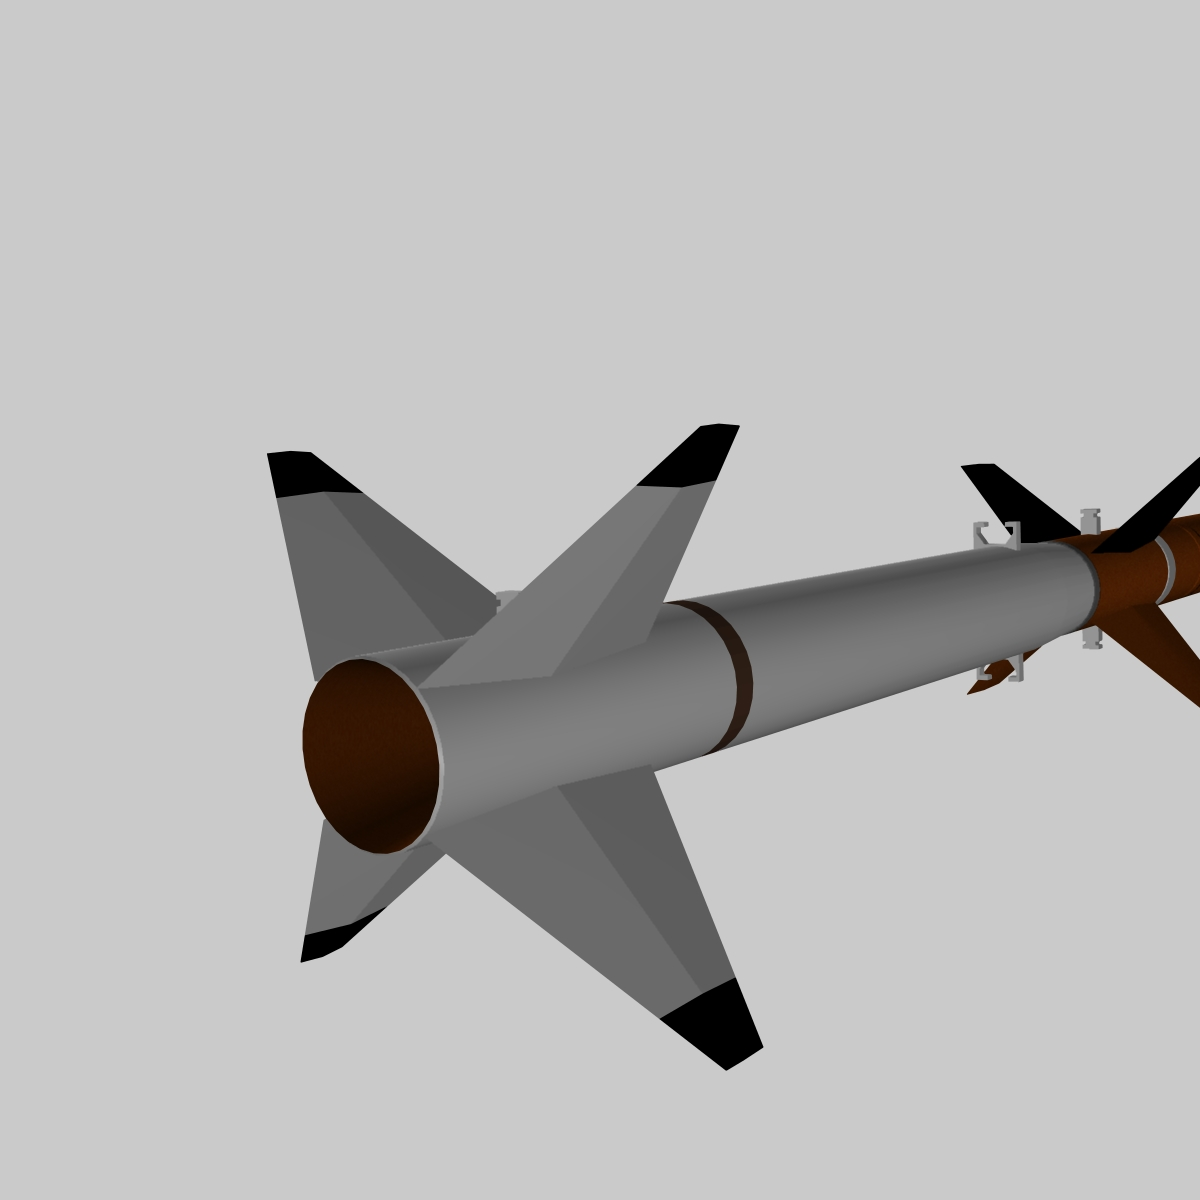 us terrier-nike missile 3d model 3ds dxf cob x obj 140337